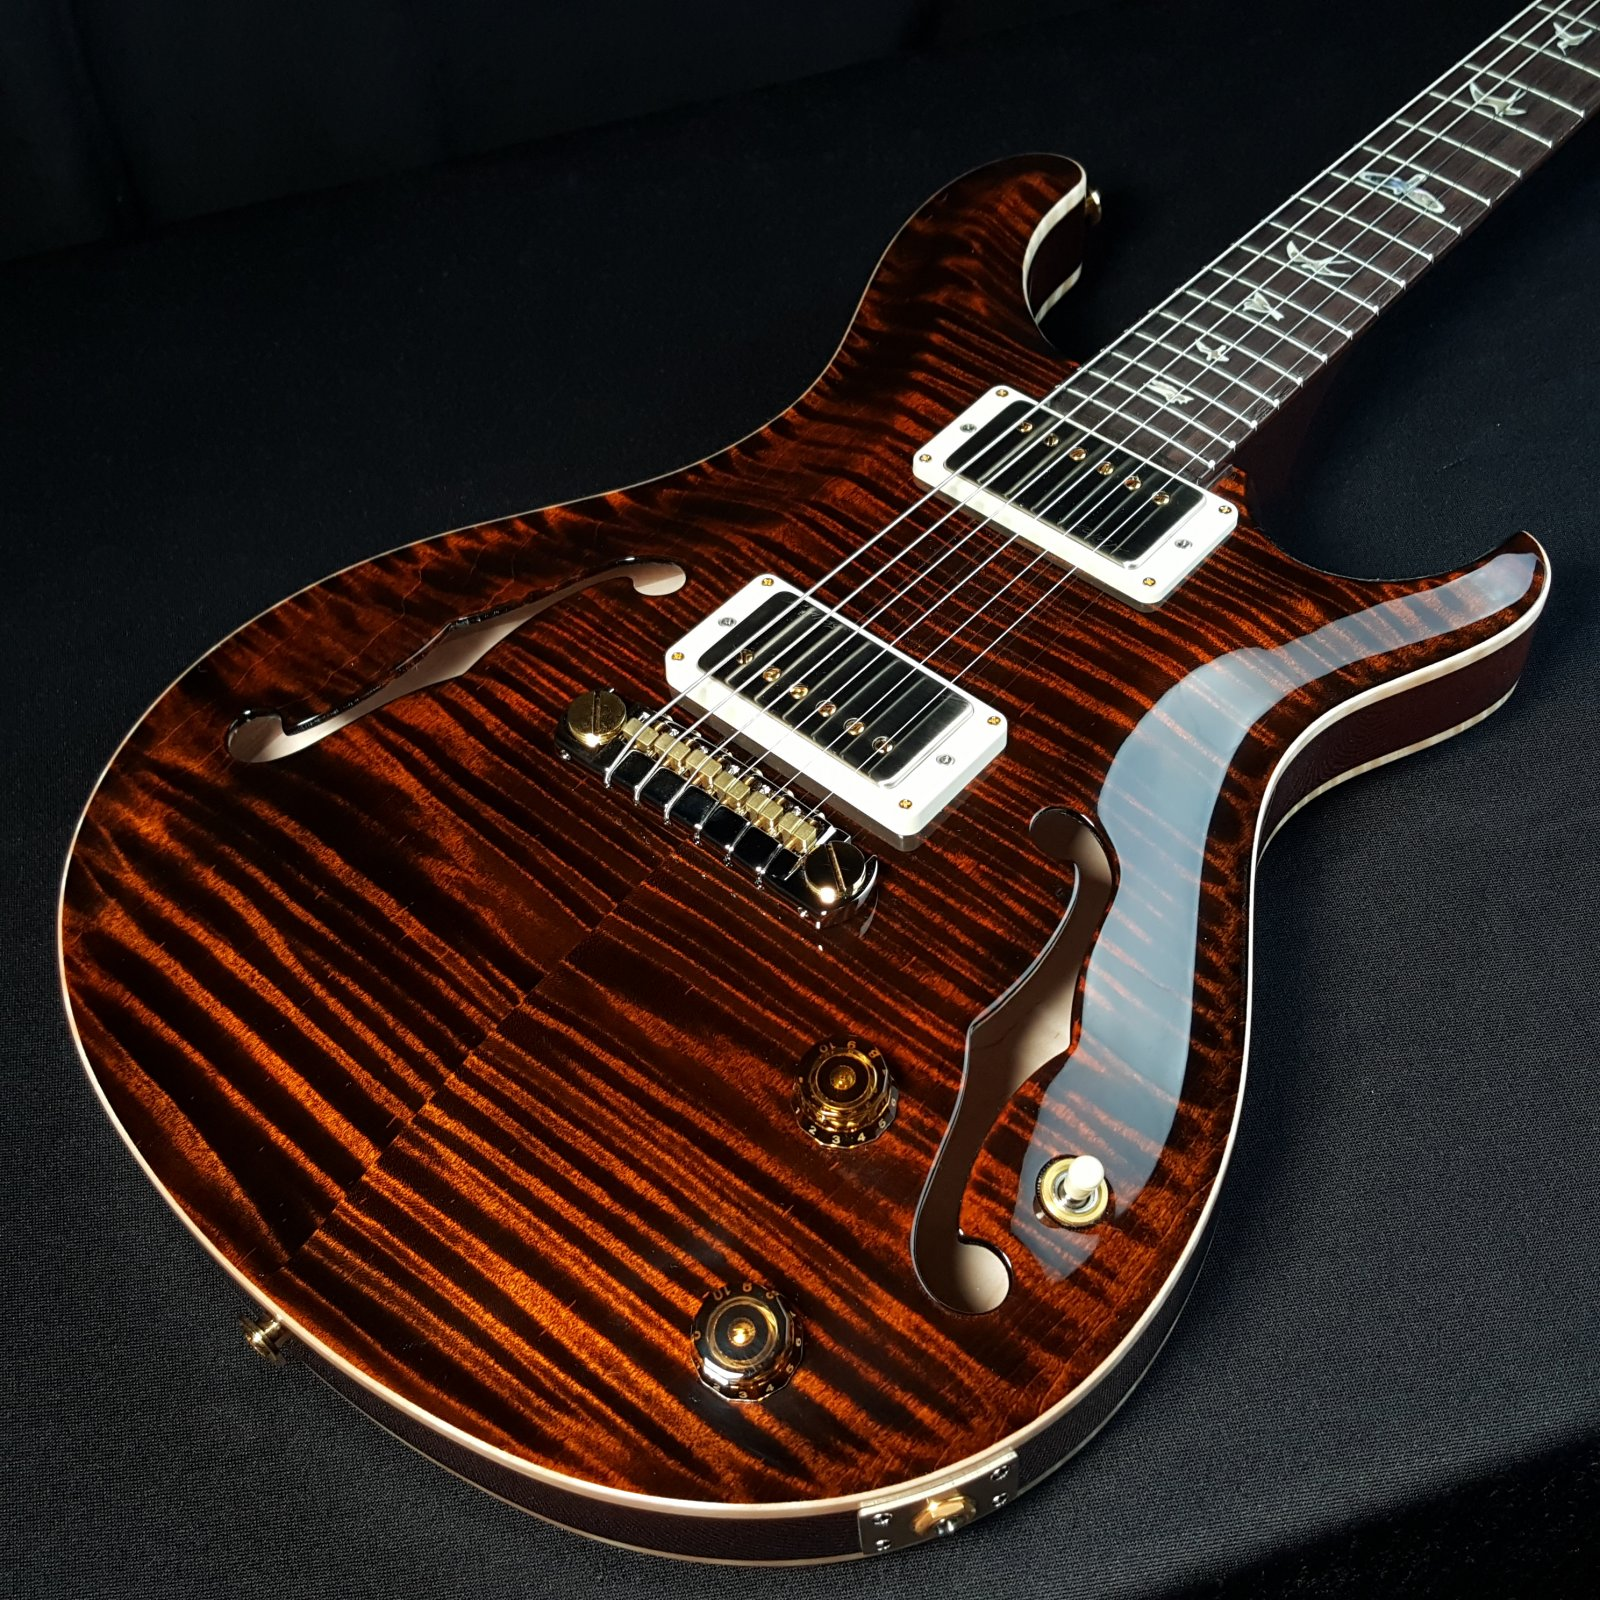 PRS Paul Reed Smith HBII Hollow Body II 10 Top Orange Tiger with Case